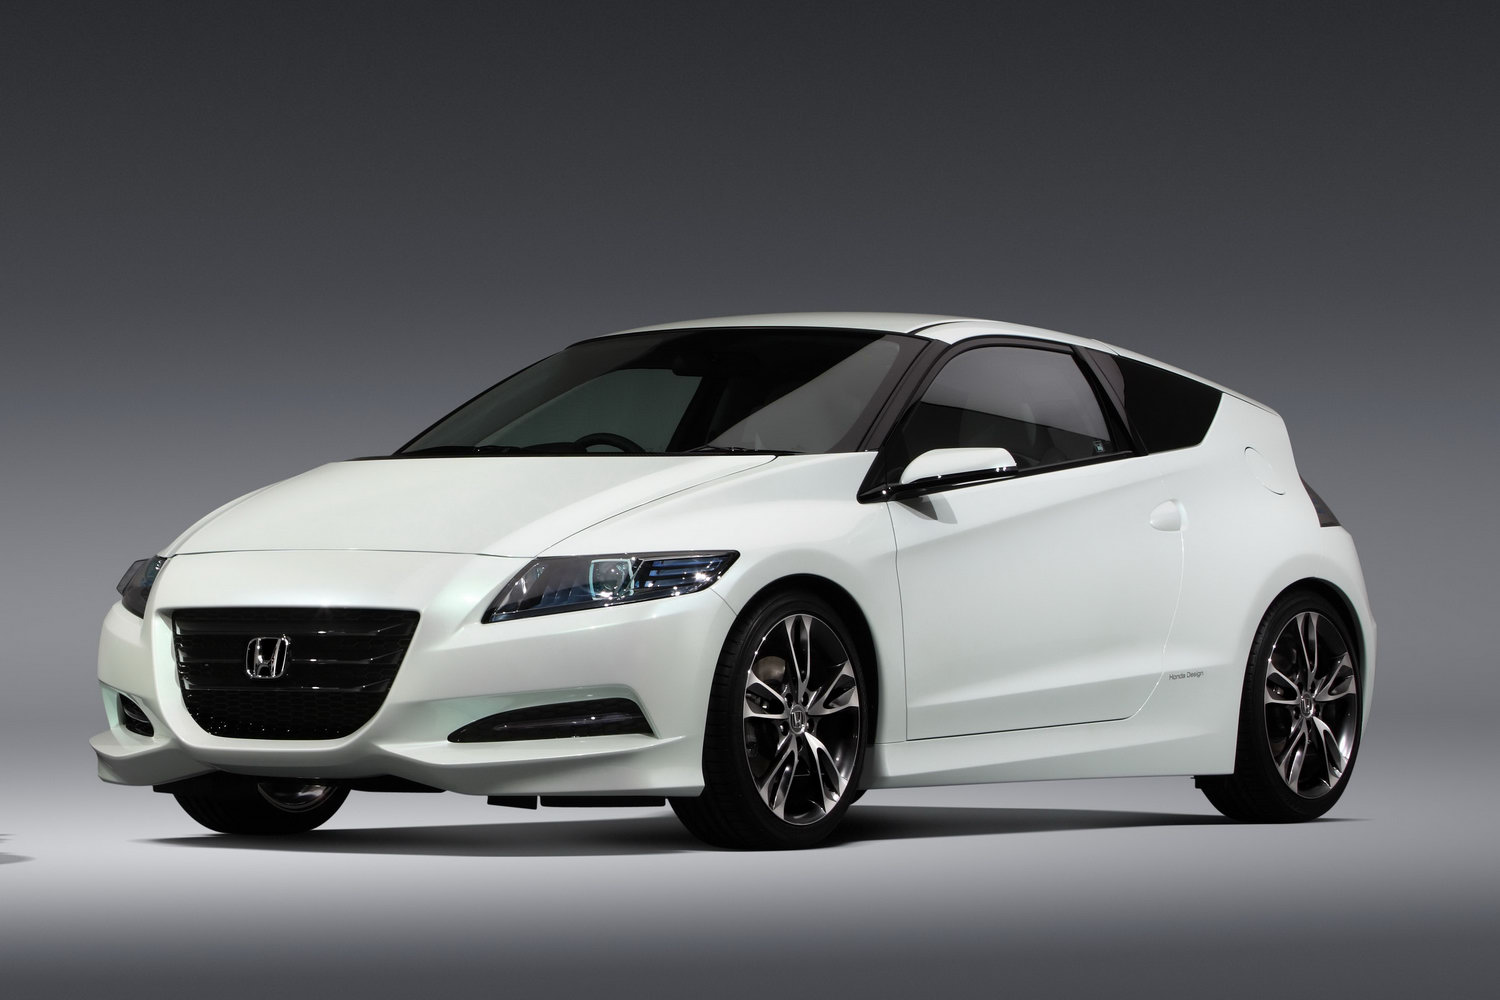 honda cr-z pictures